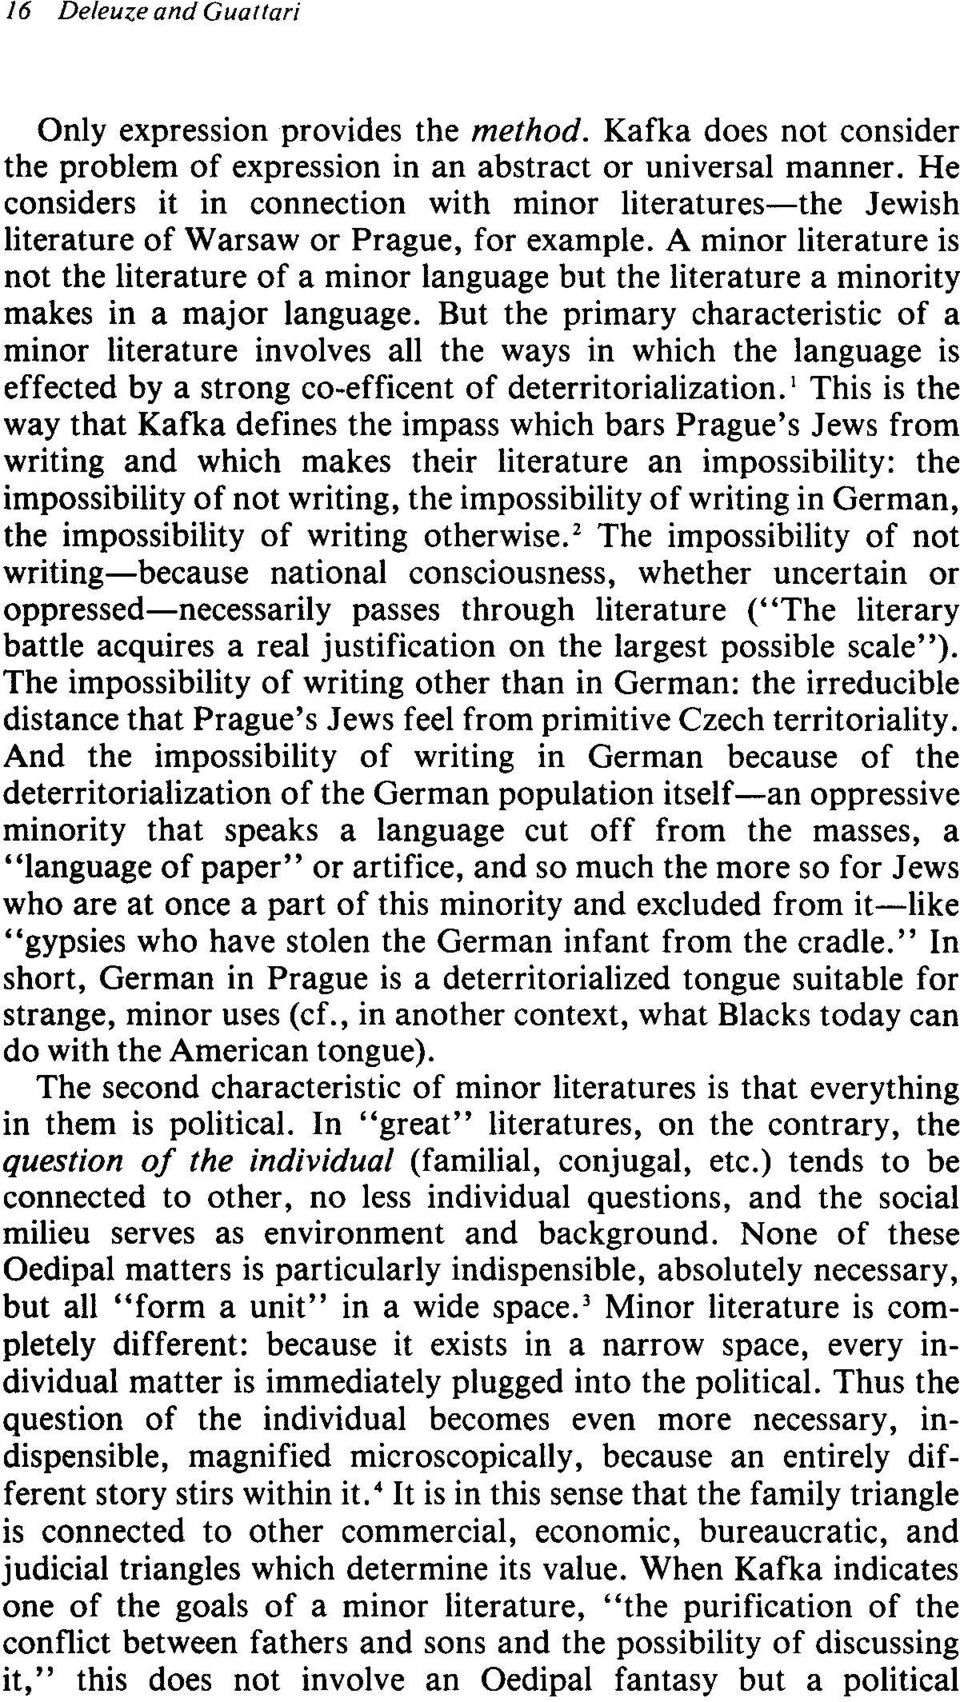 A minor literature is not the literature of a minor language but the literature a minority makes in a major language.